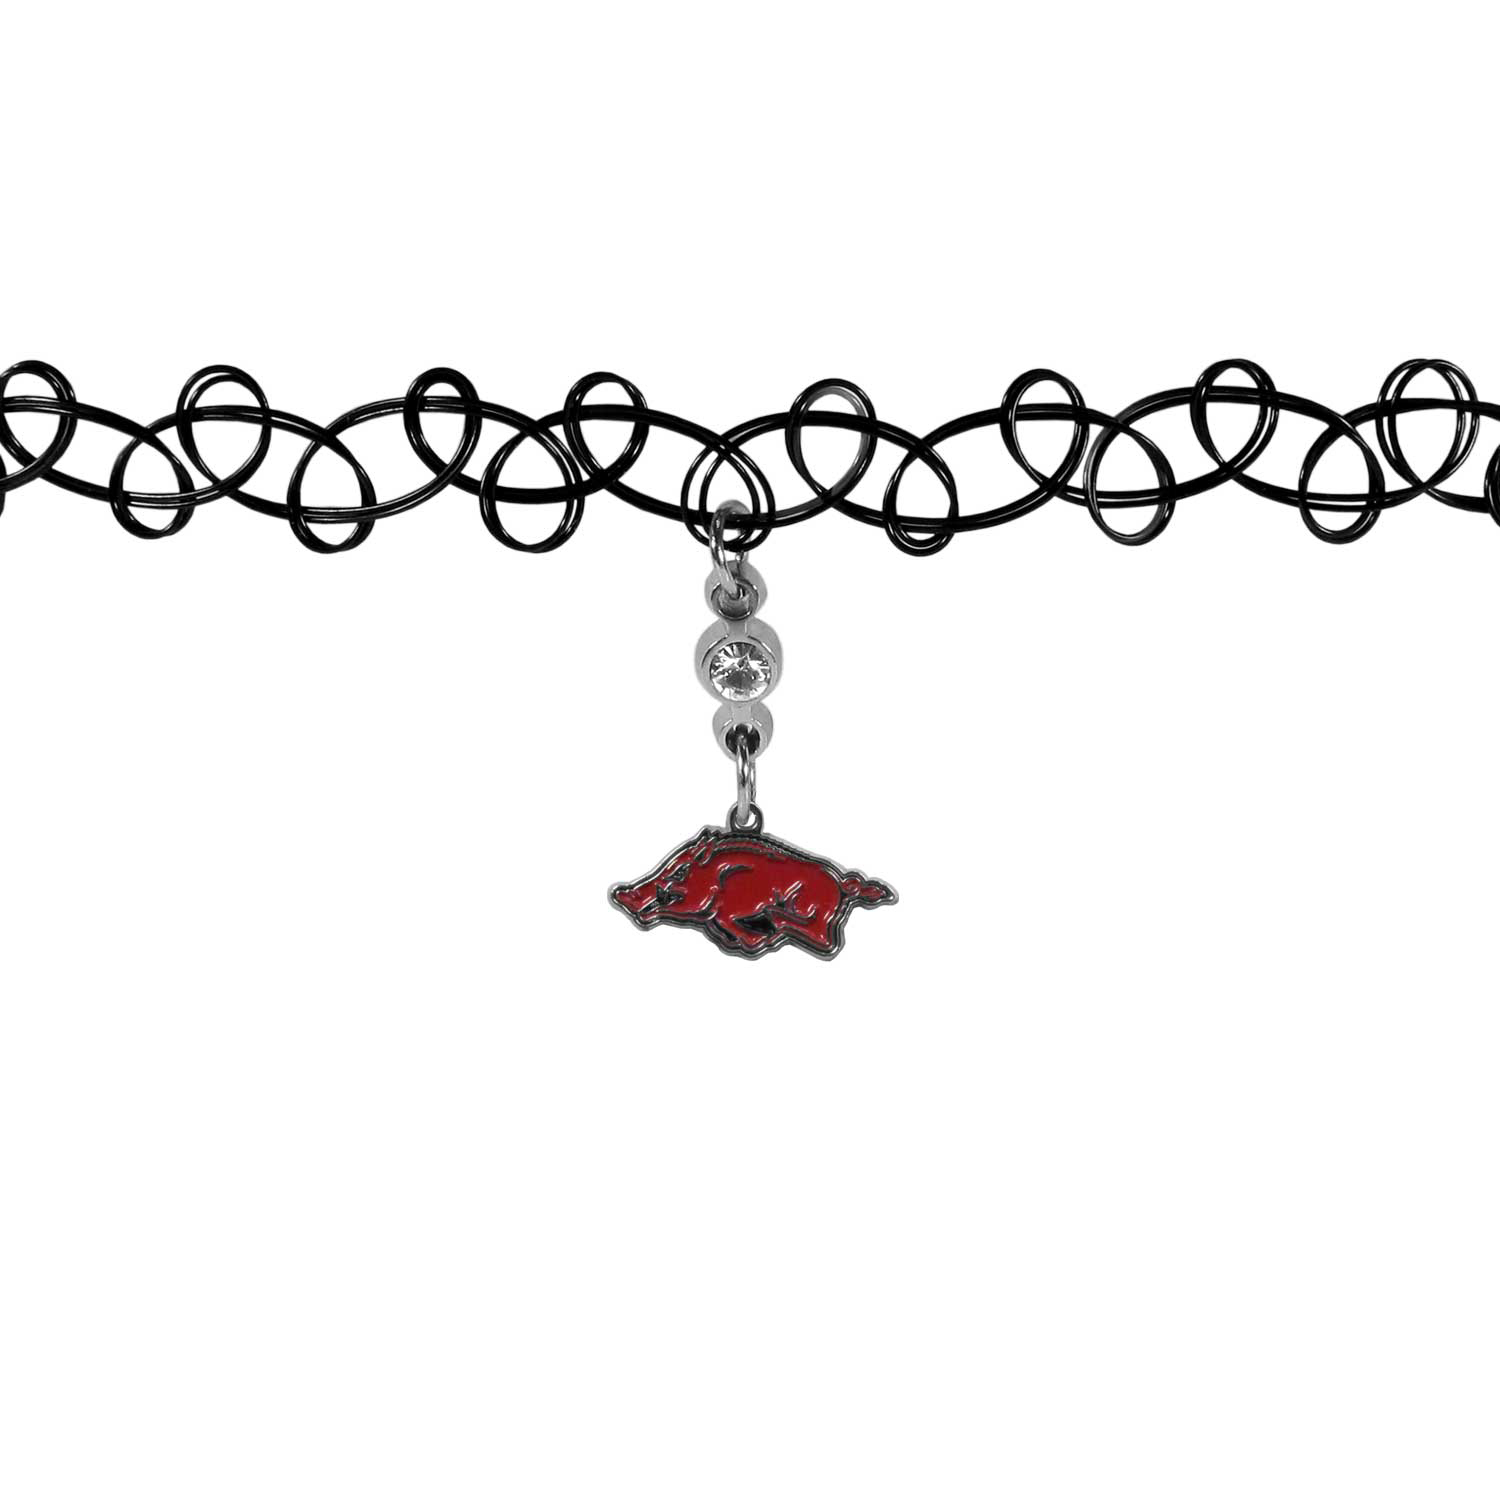 Arkansas Razorbacks Knotted Choker - This retro, knotted choker is a cool and unique piece of fan jewelry. The tattoo style choker features a high polish Arkansas Razorbacks charm with rhinestone accents.